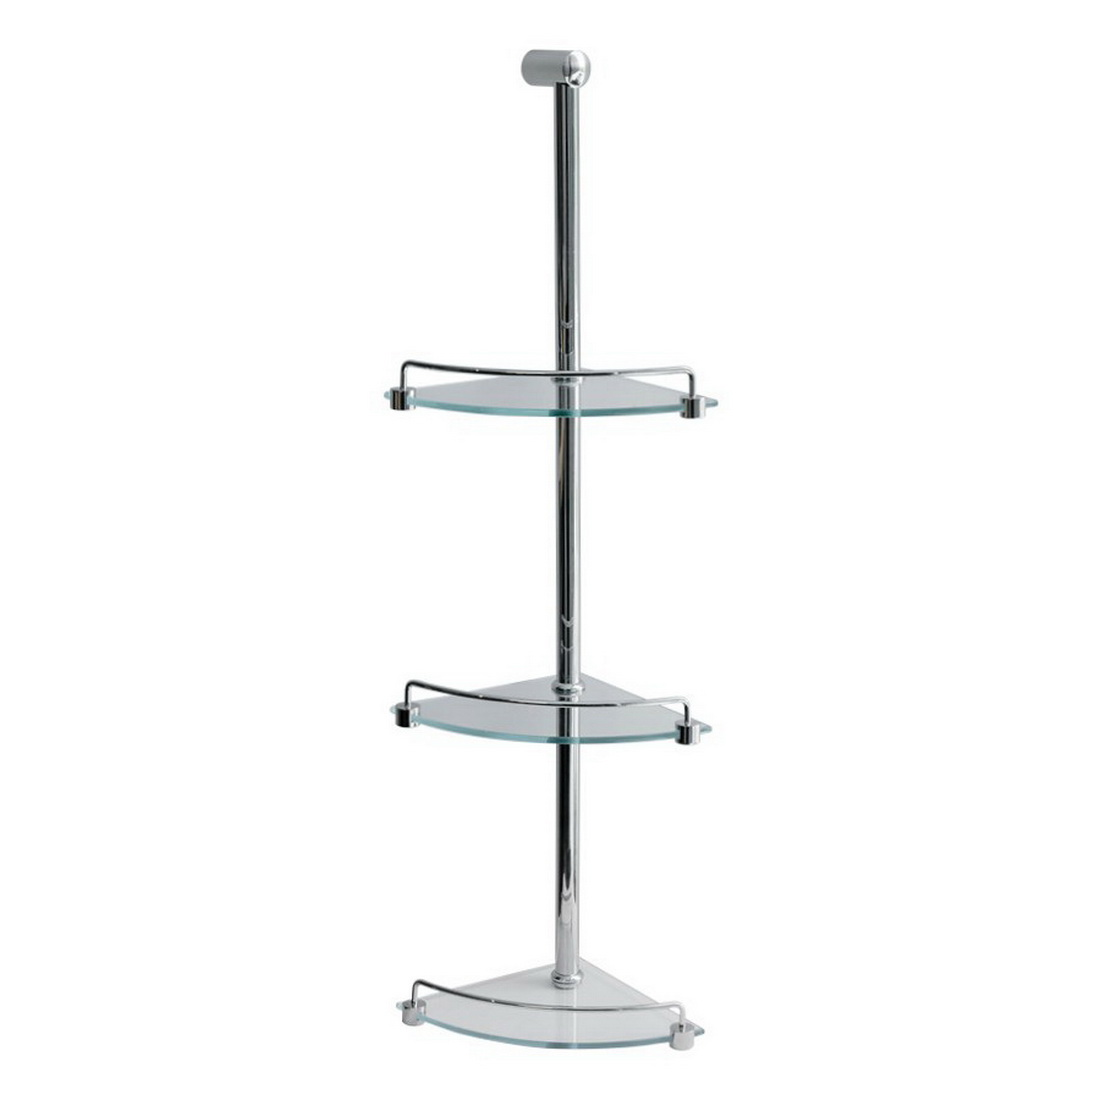 Progetto 3 Tier Glass Shower Caddy 770 mm Chrome SCC3